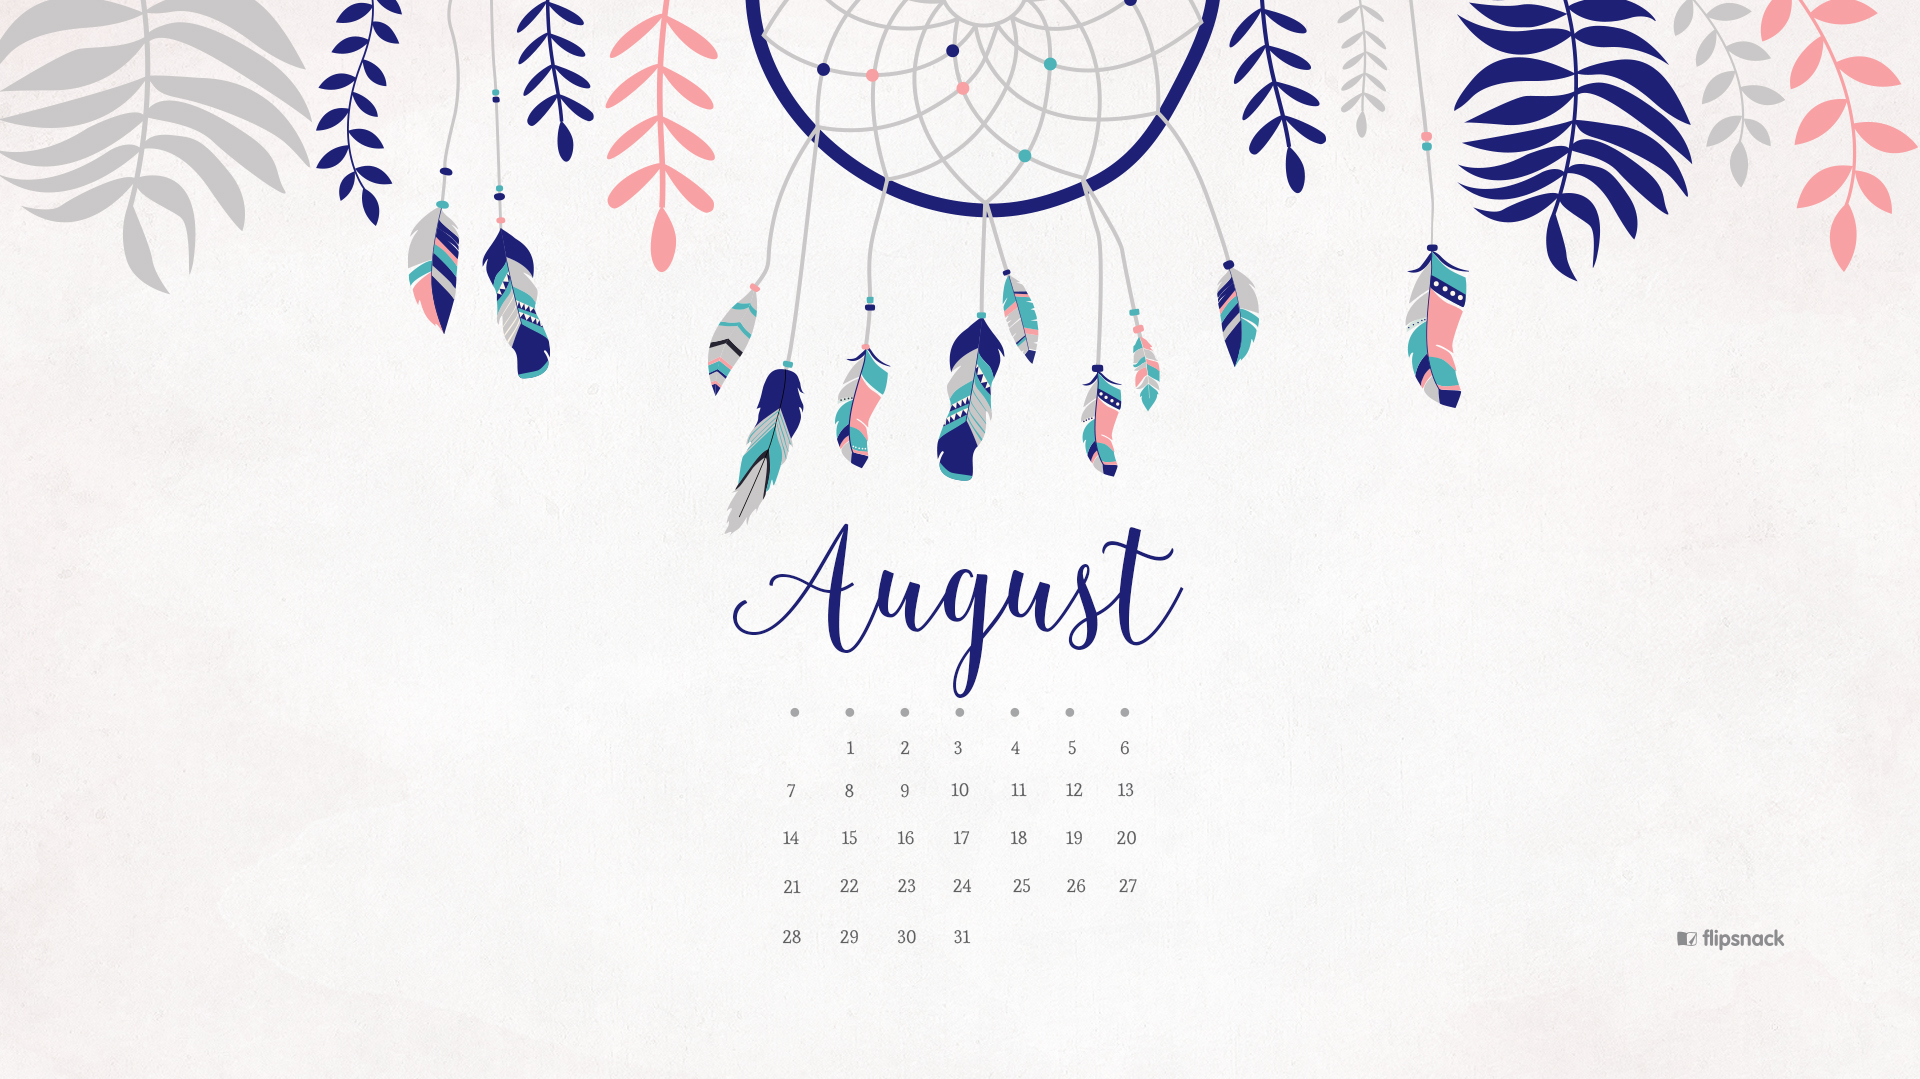 Calendar Wallpaper Pc : August free calendar desktop wallpaper